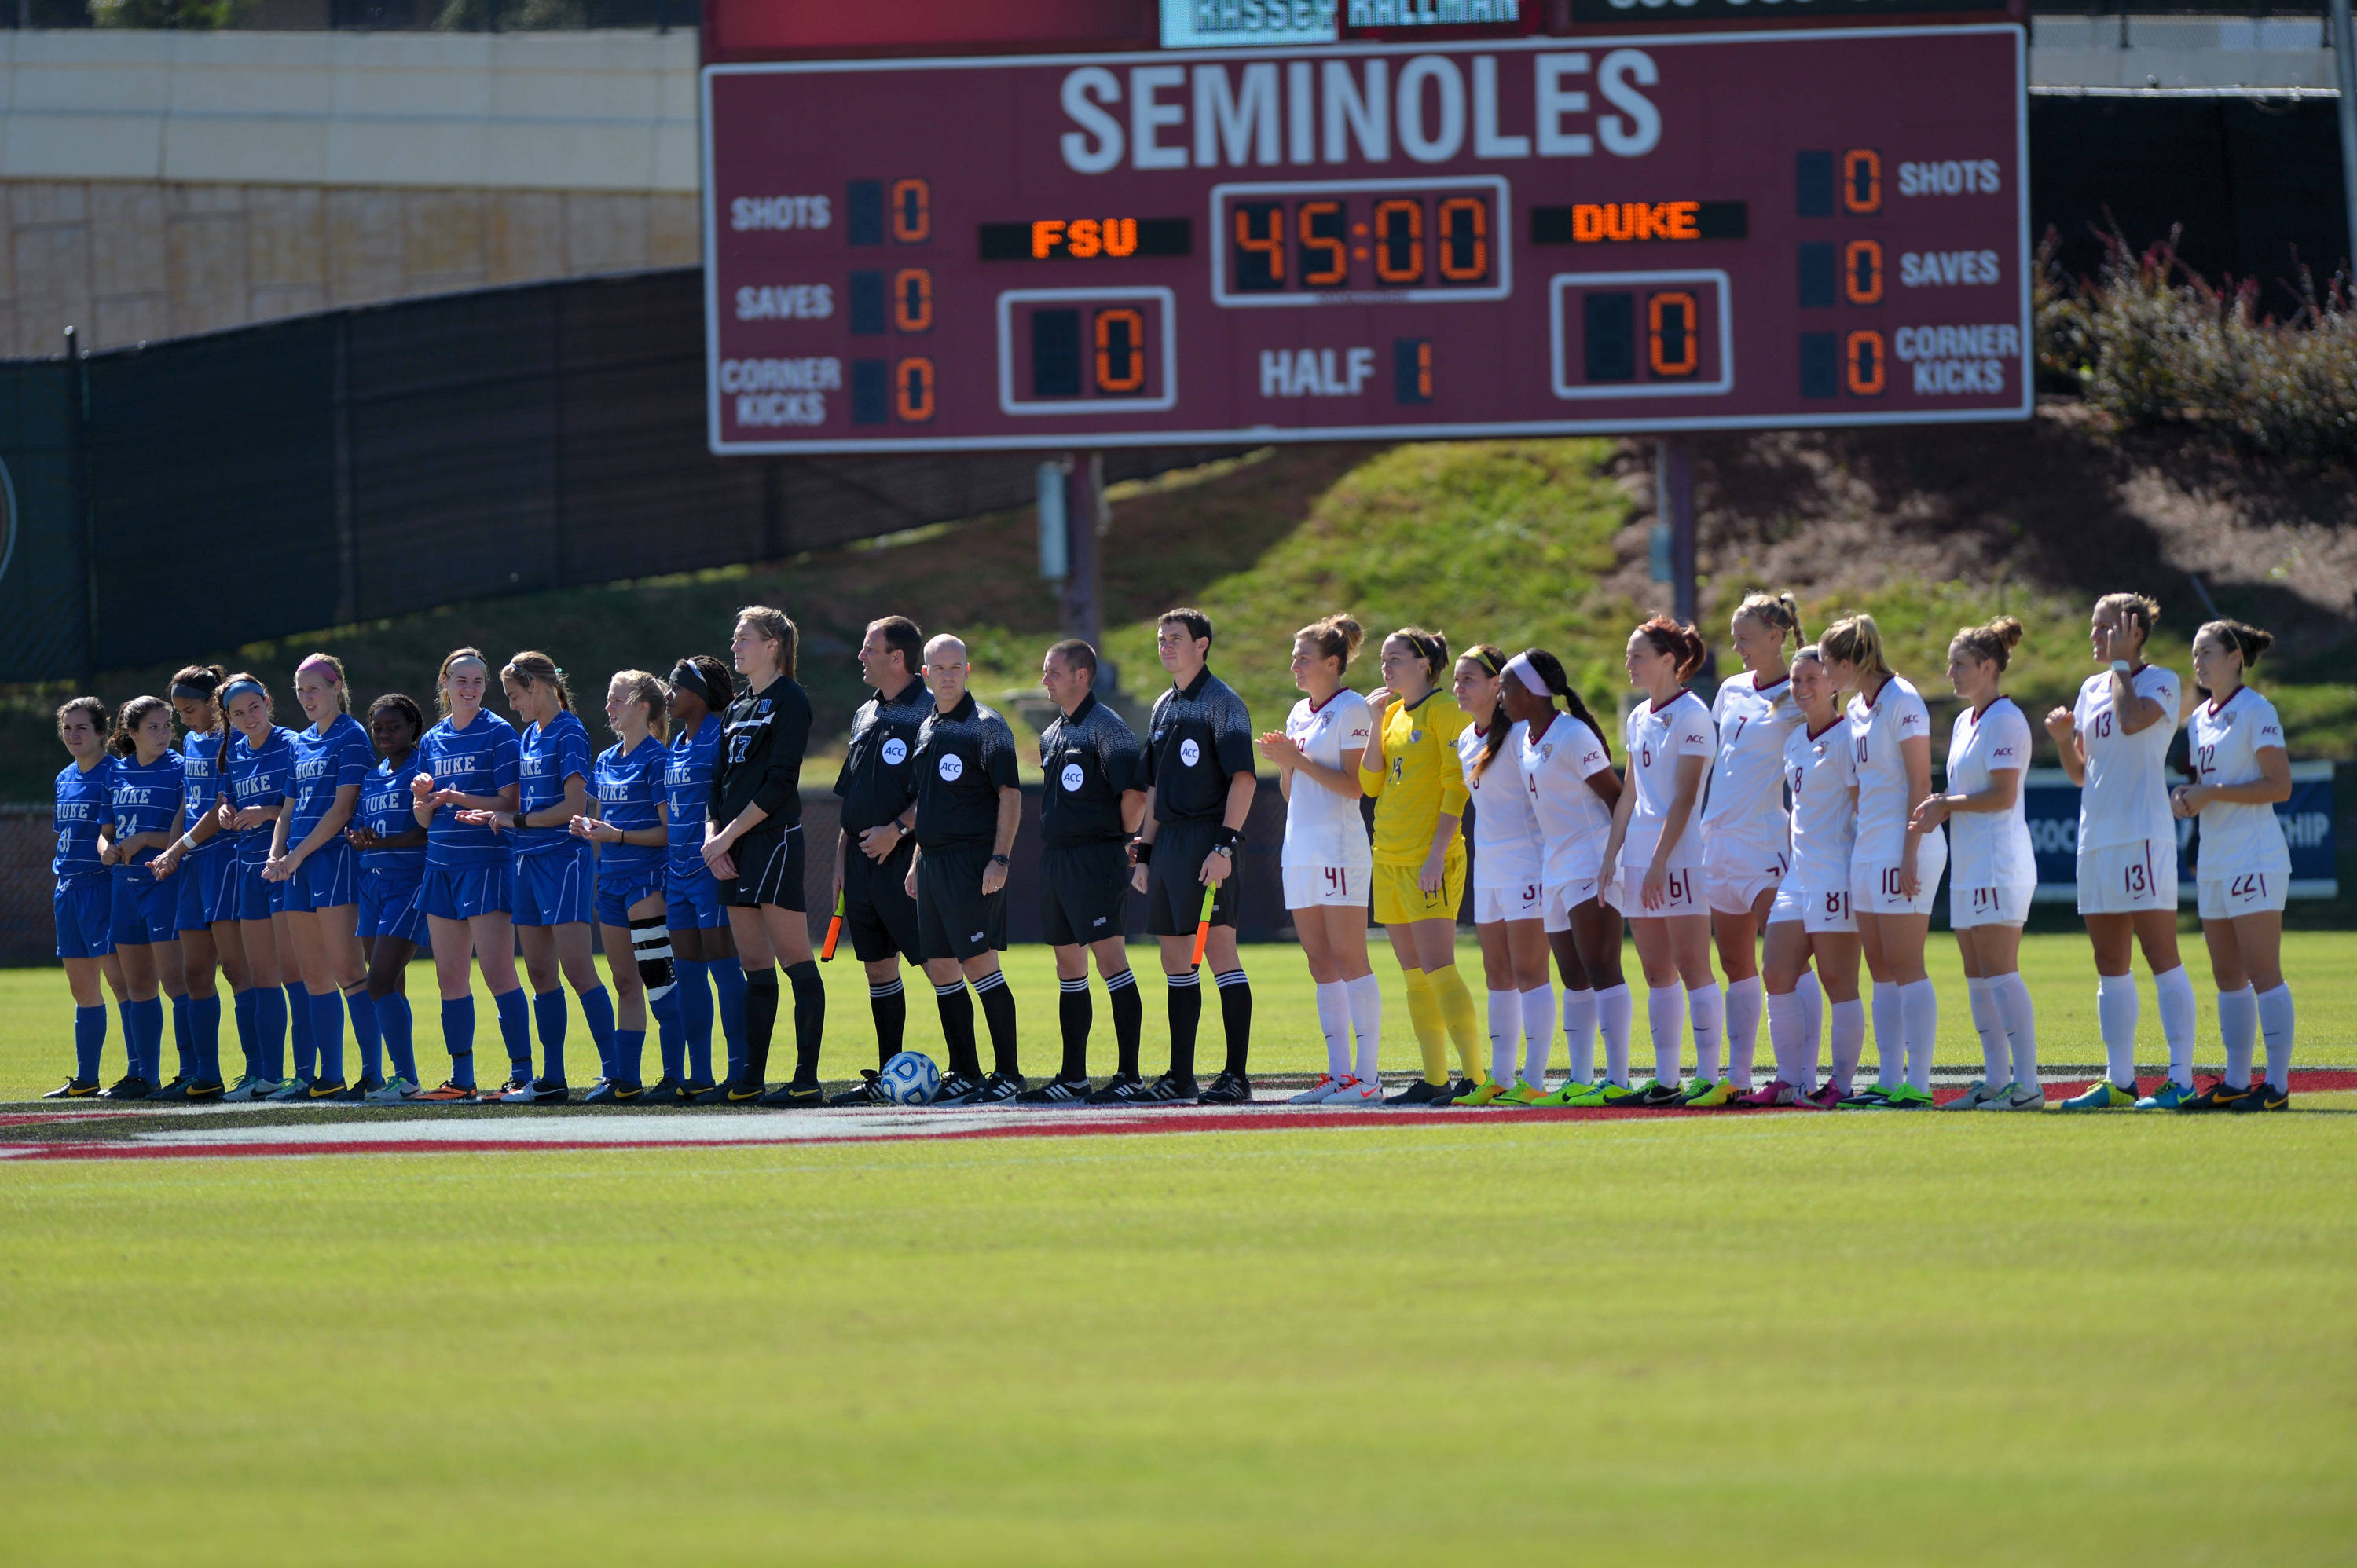 Duke and Florida State at midfield for Sunday's starting line-up of the 2013 ACC Quarterfinals.